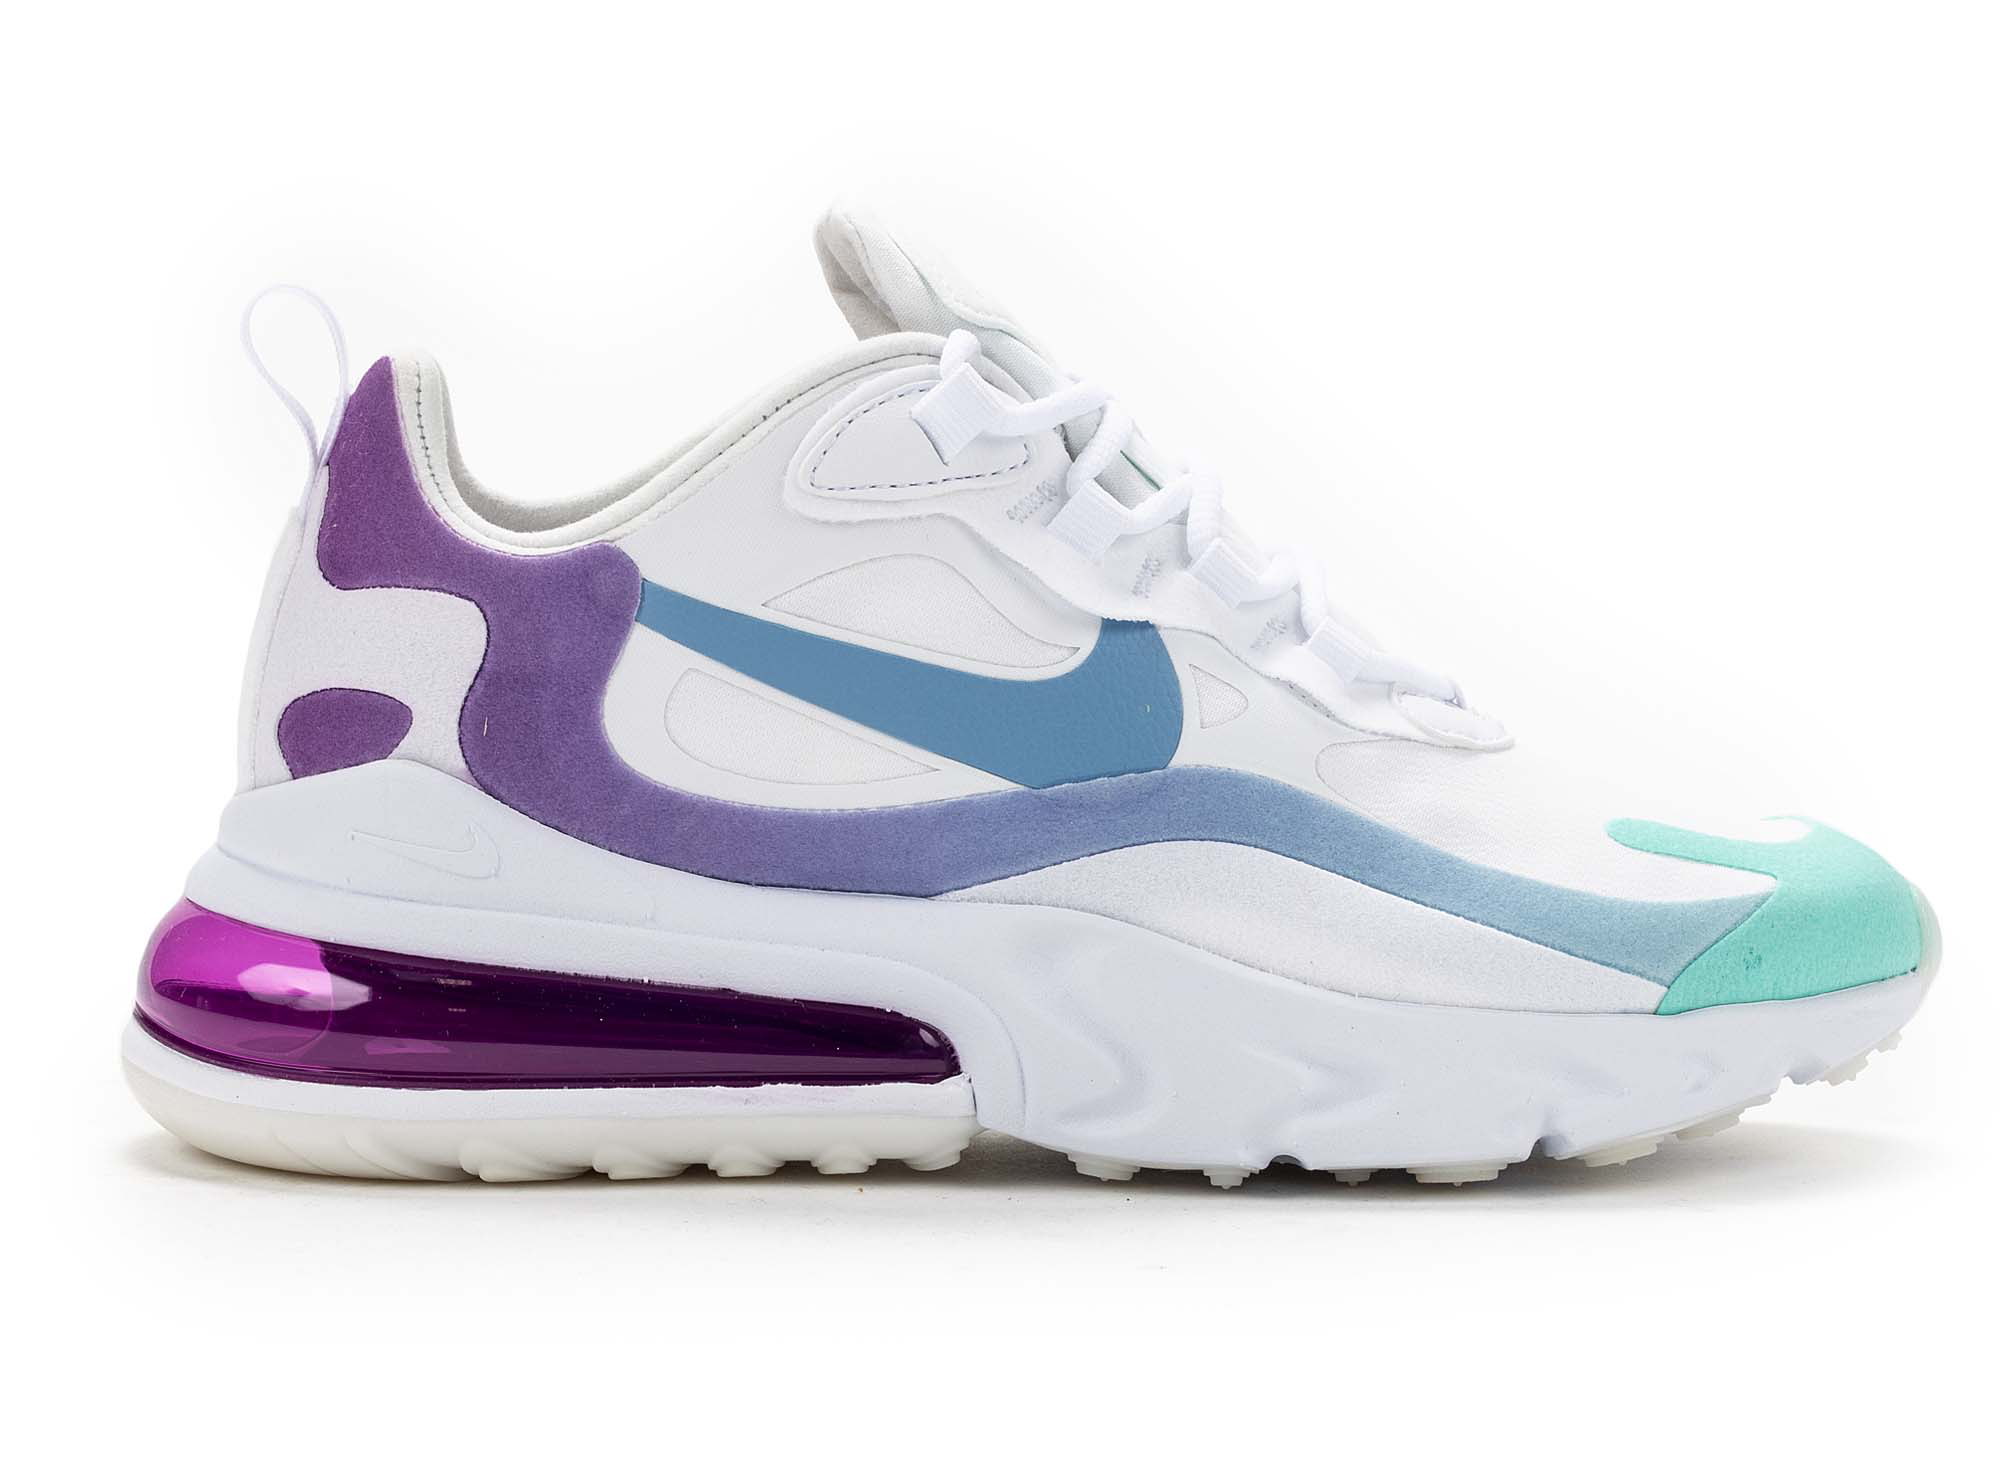 Women's Nike Air Max 270 React - Oneness Boutique